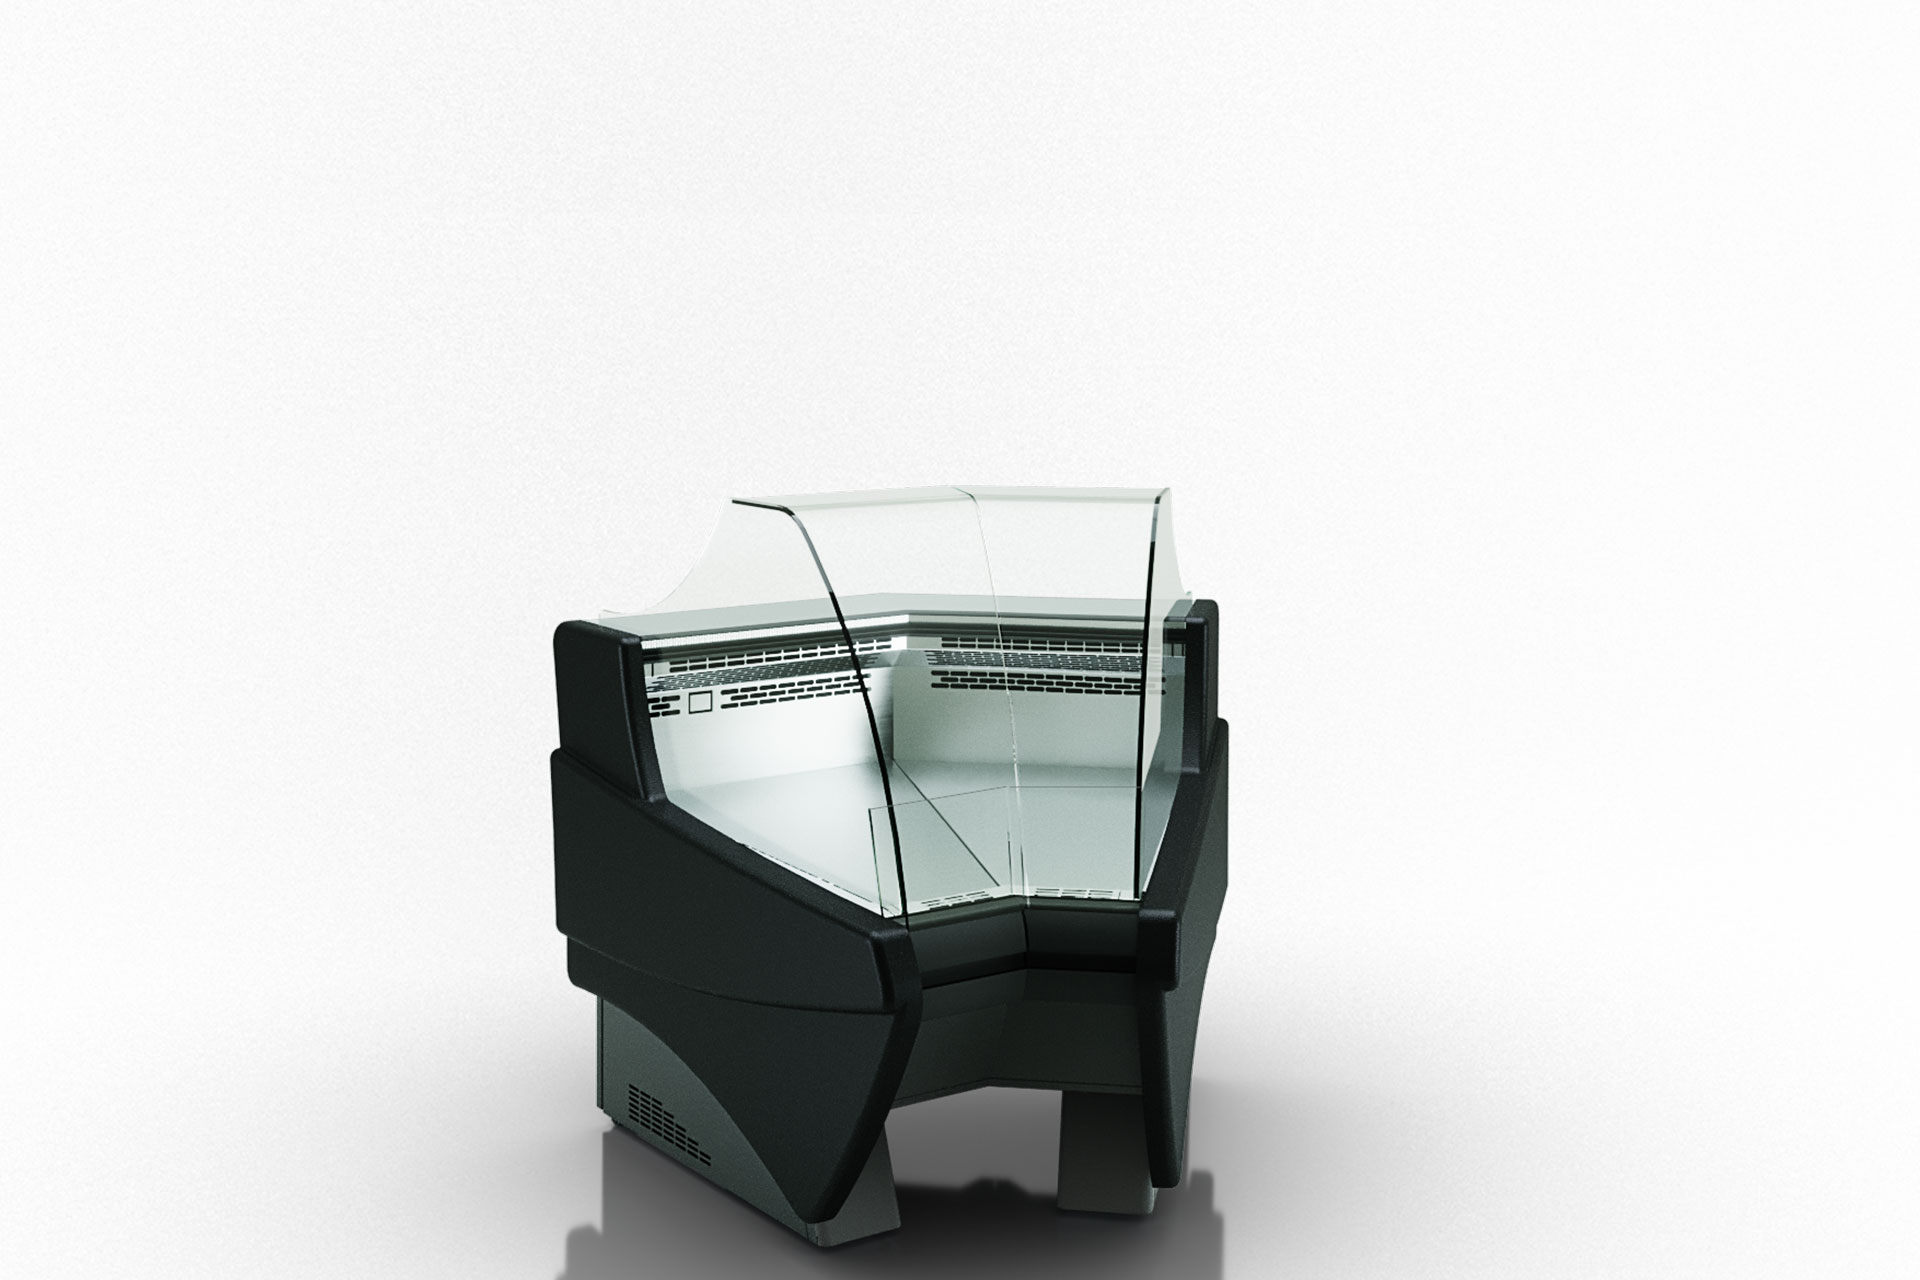 Counter Symphony luxe MG 100 deli T 110-DLM-IS45